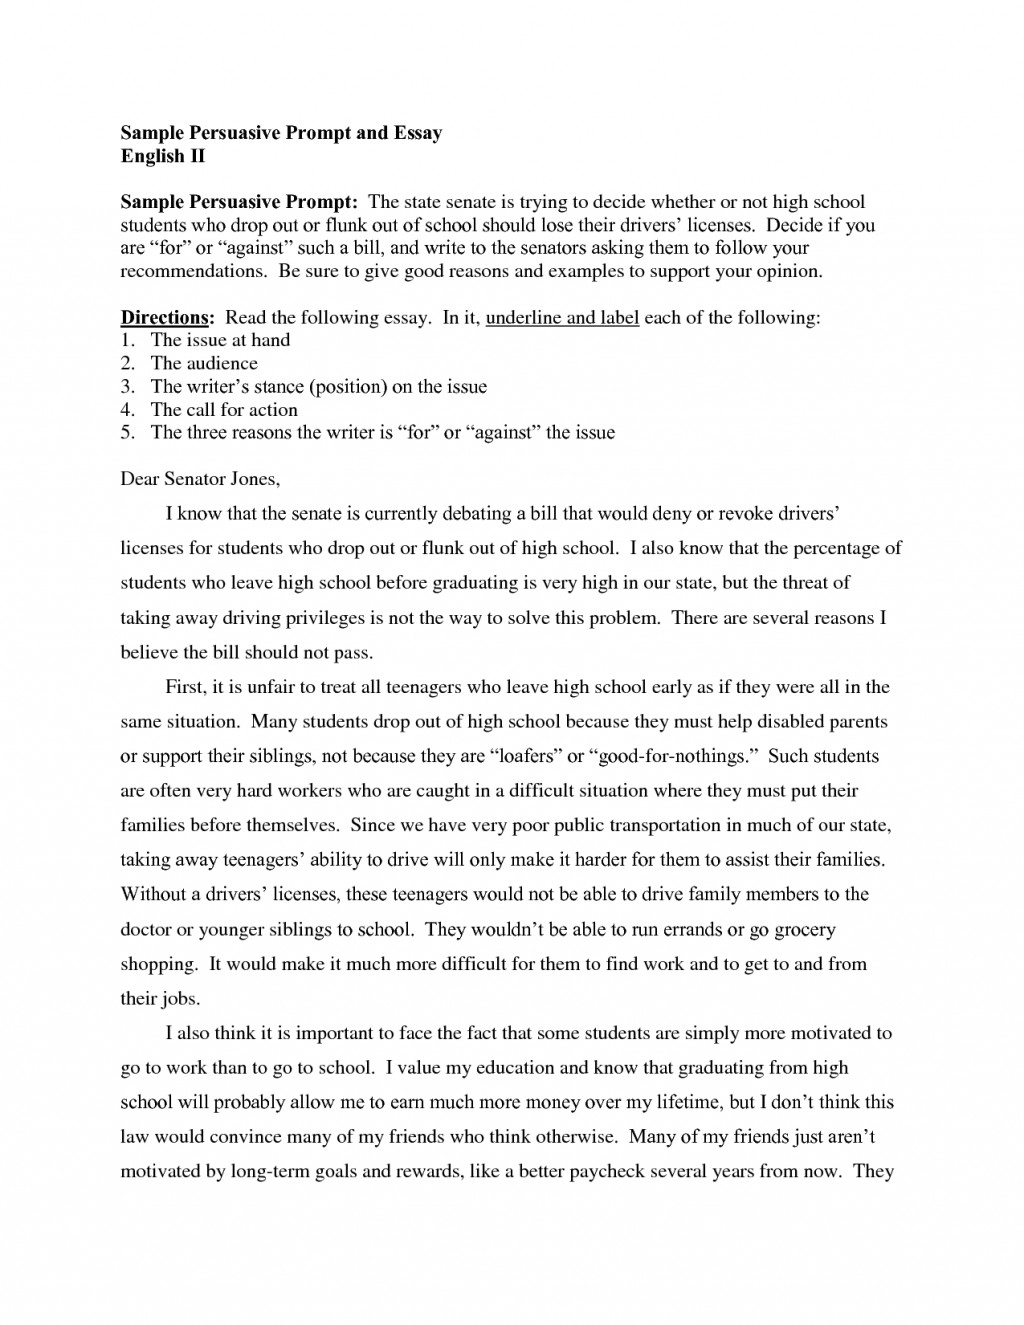 environment persuasive essay topics research paper essays for    persuasive essay topics for high school sample ideas highschool  students good prompt funny easy fun